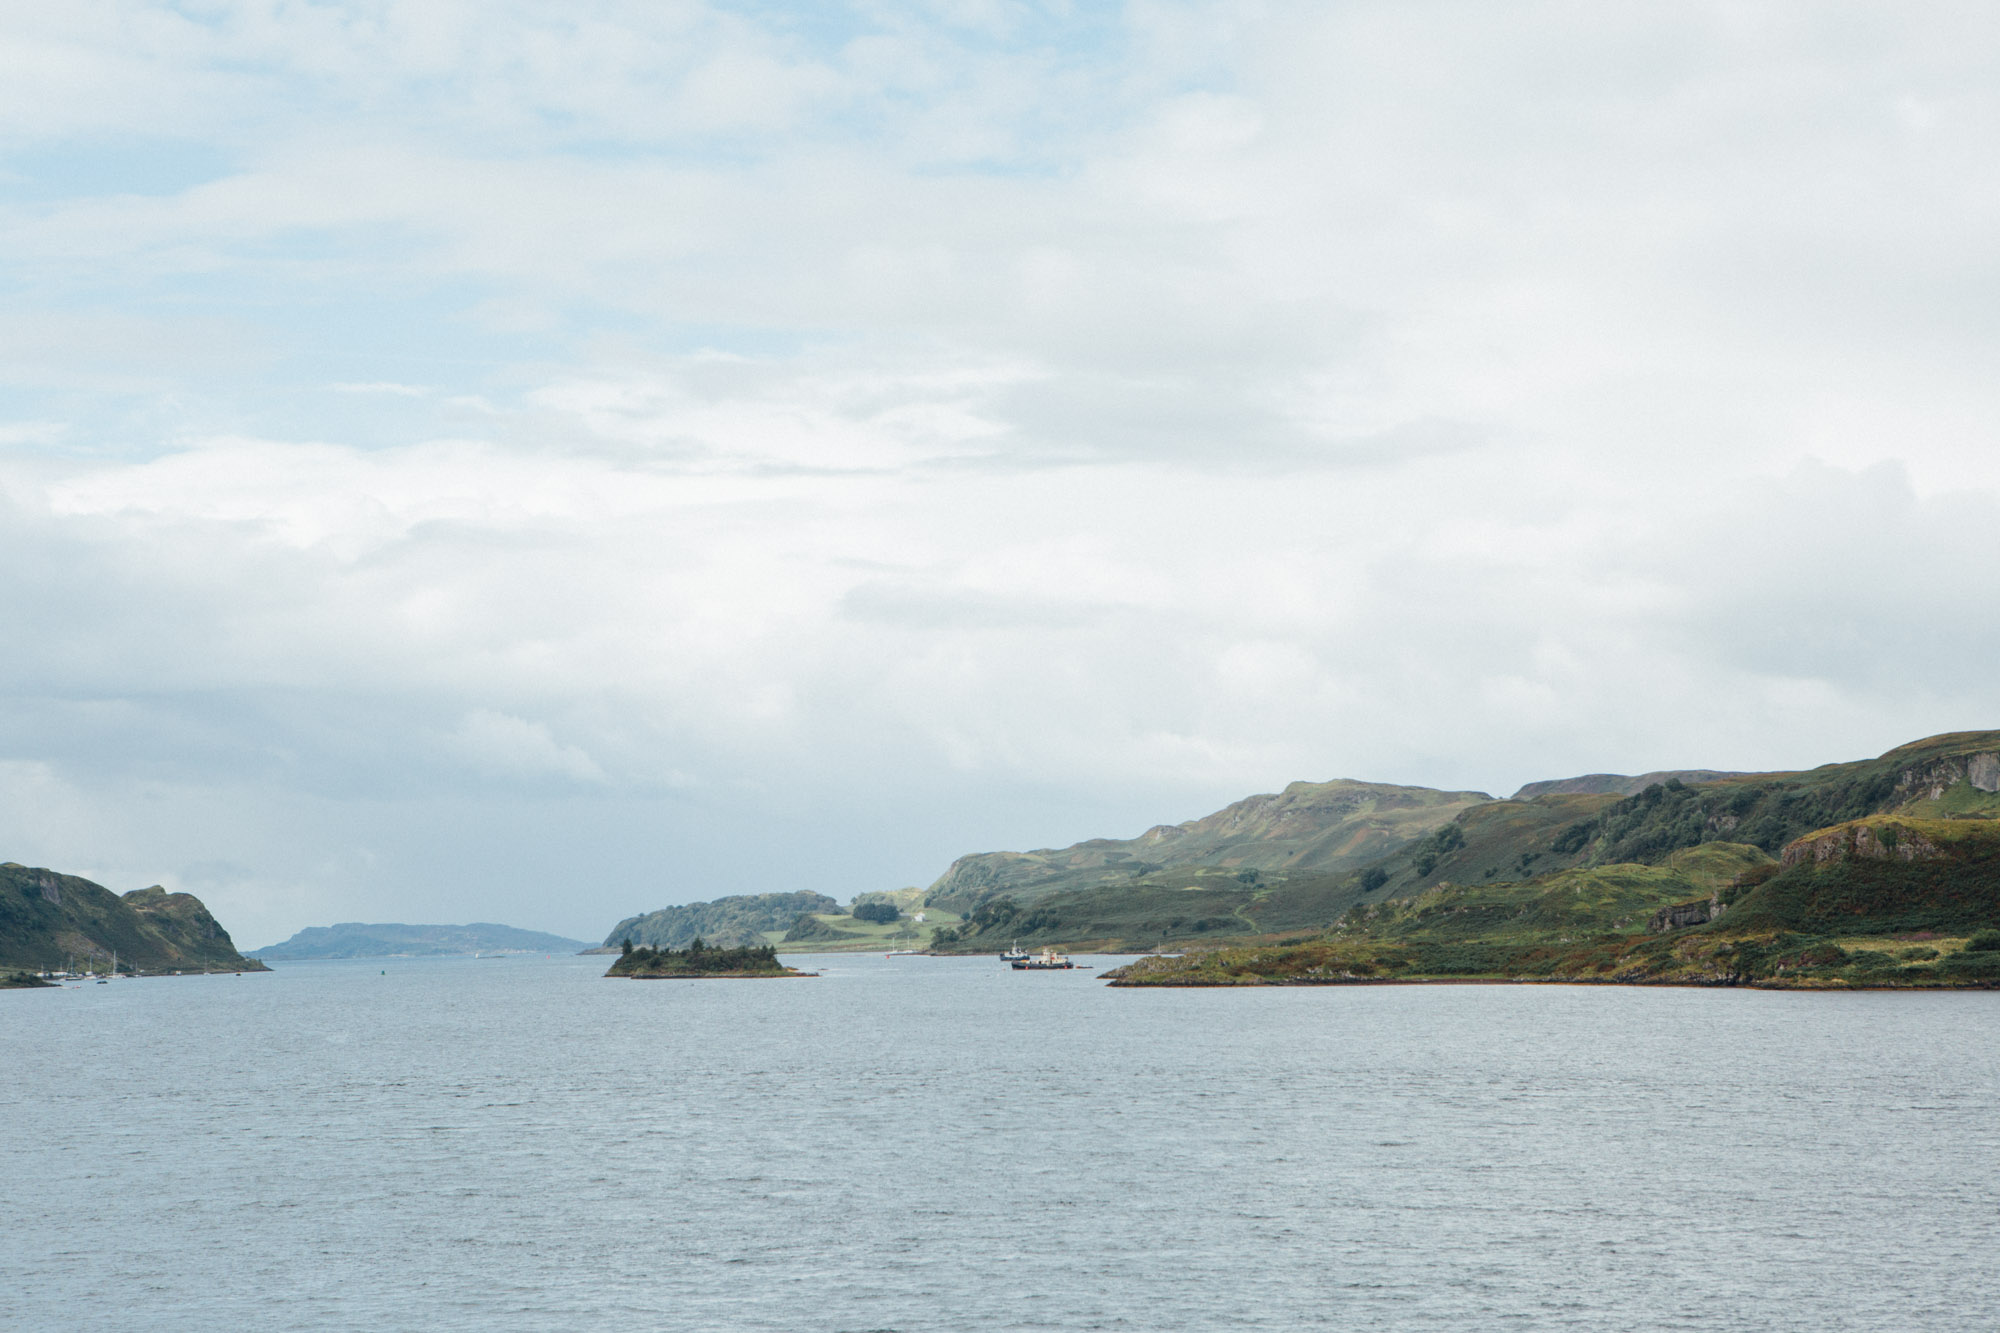 A weekend in Isle of Mull and Oban and Ardlui: Ferry to Oban